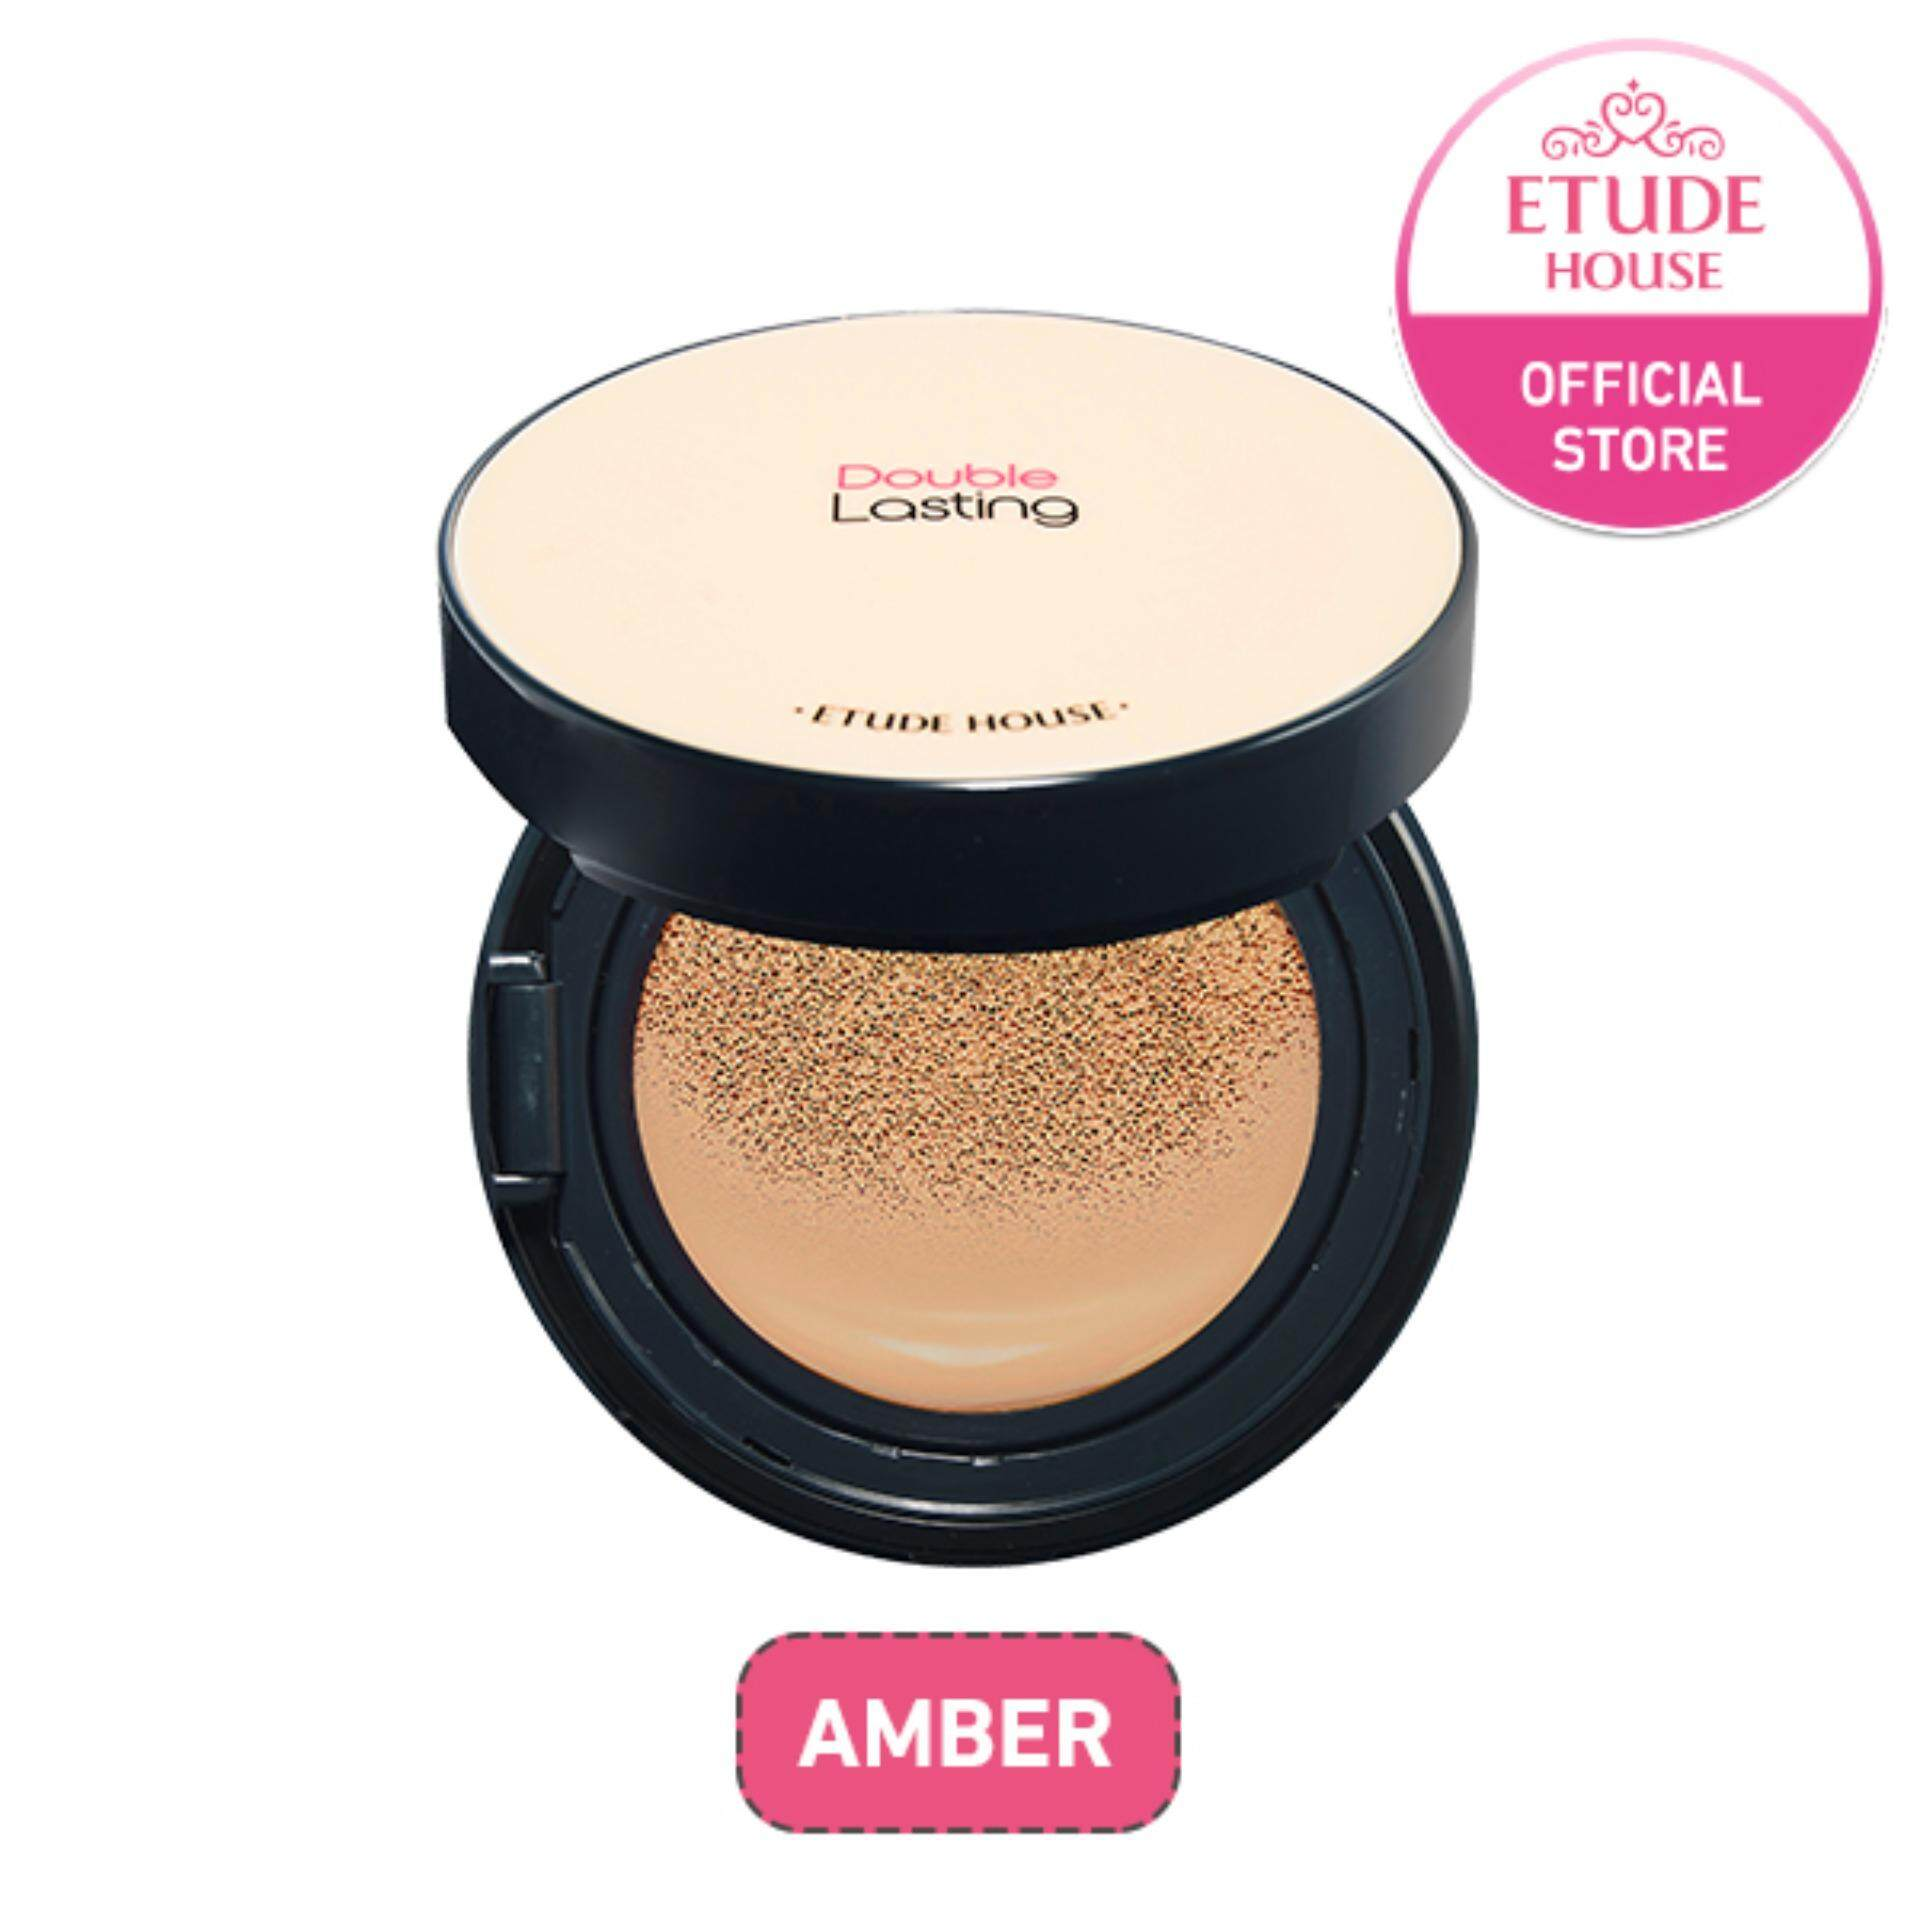 ETUDE HOUSE Double Lasting Cushion SPF34/PA++ (15 g)